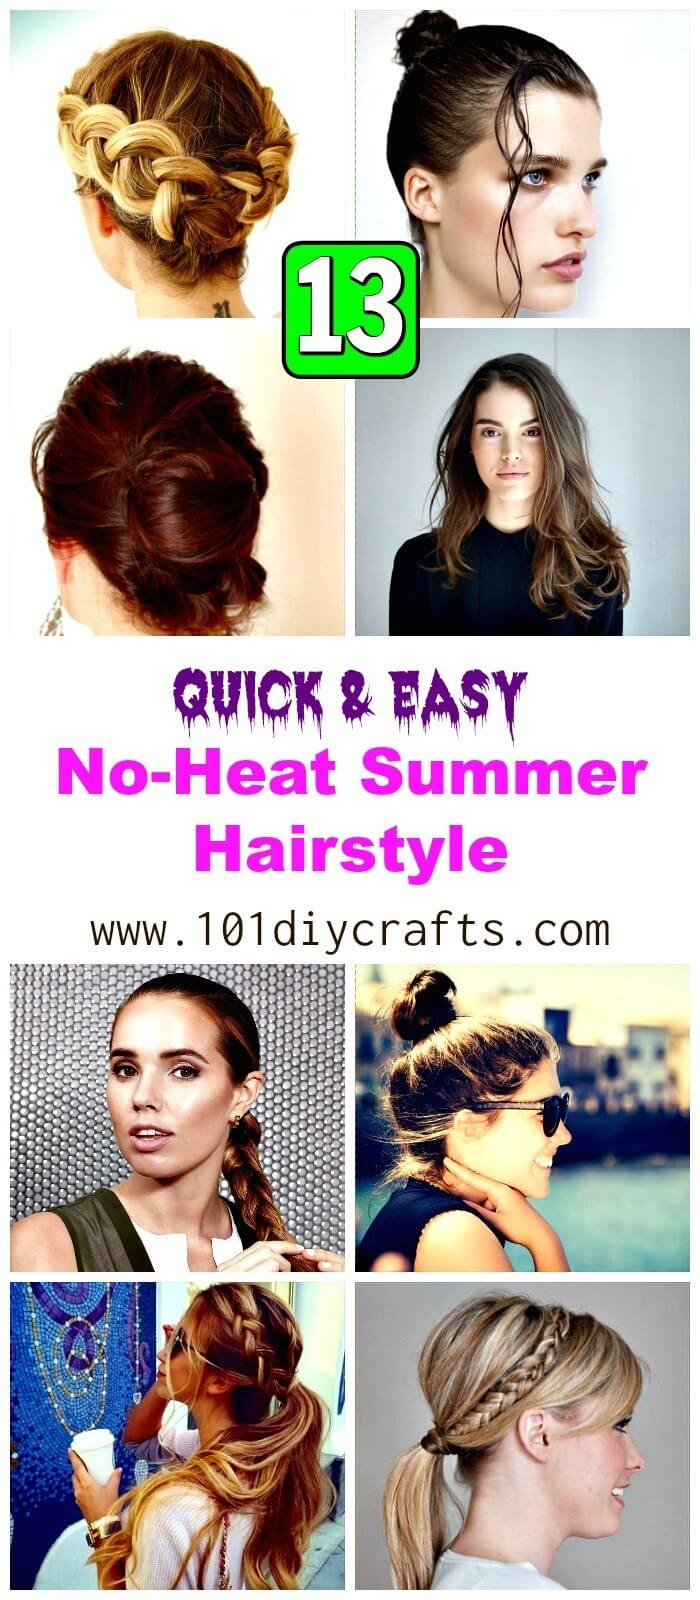 13 Quick & Easy No-Heat Summer Hairstyle